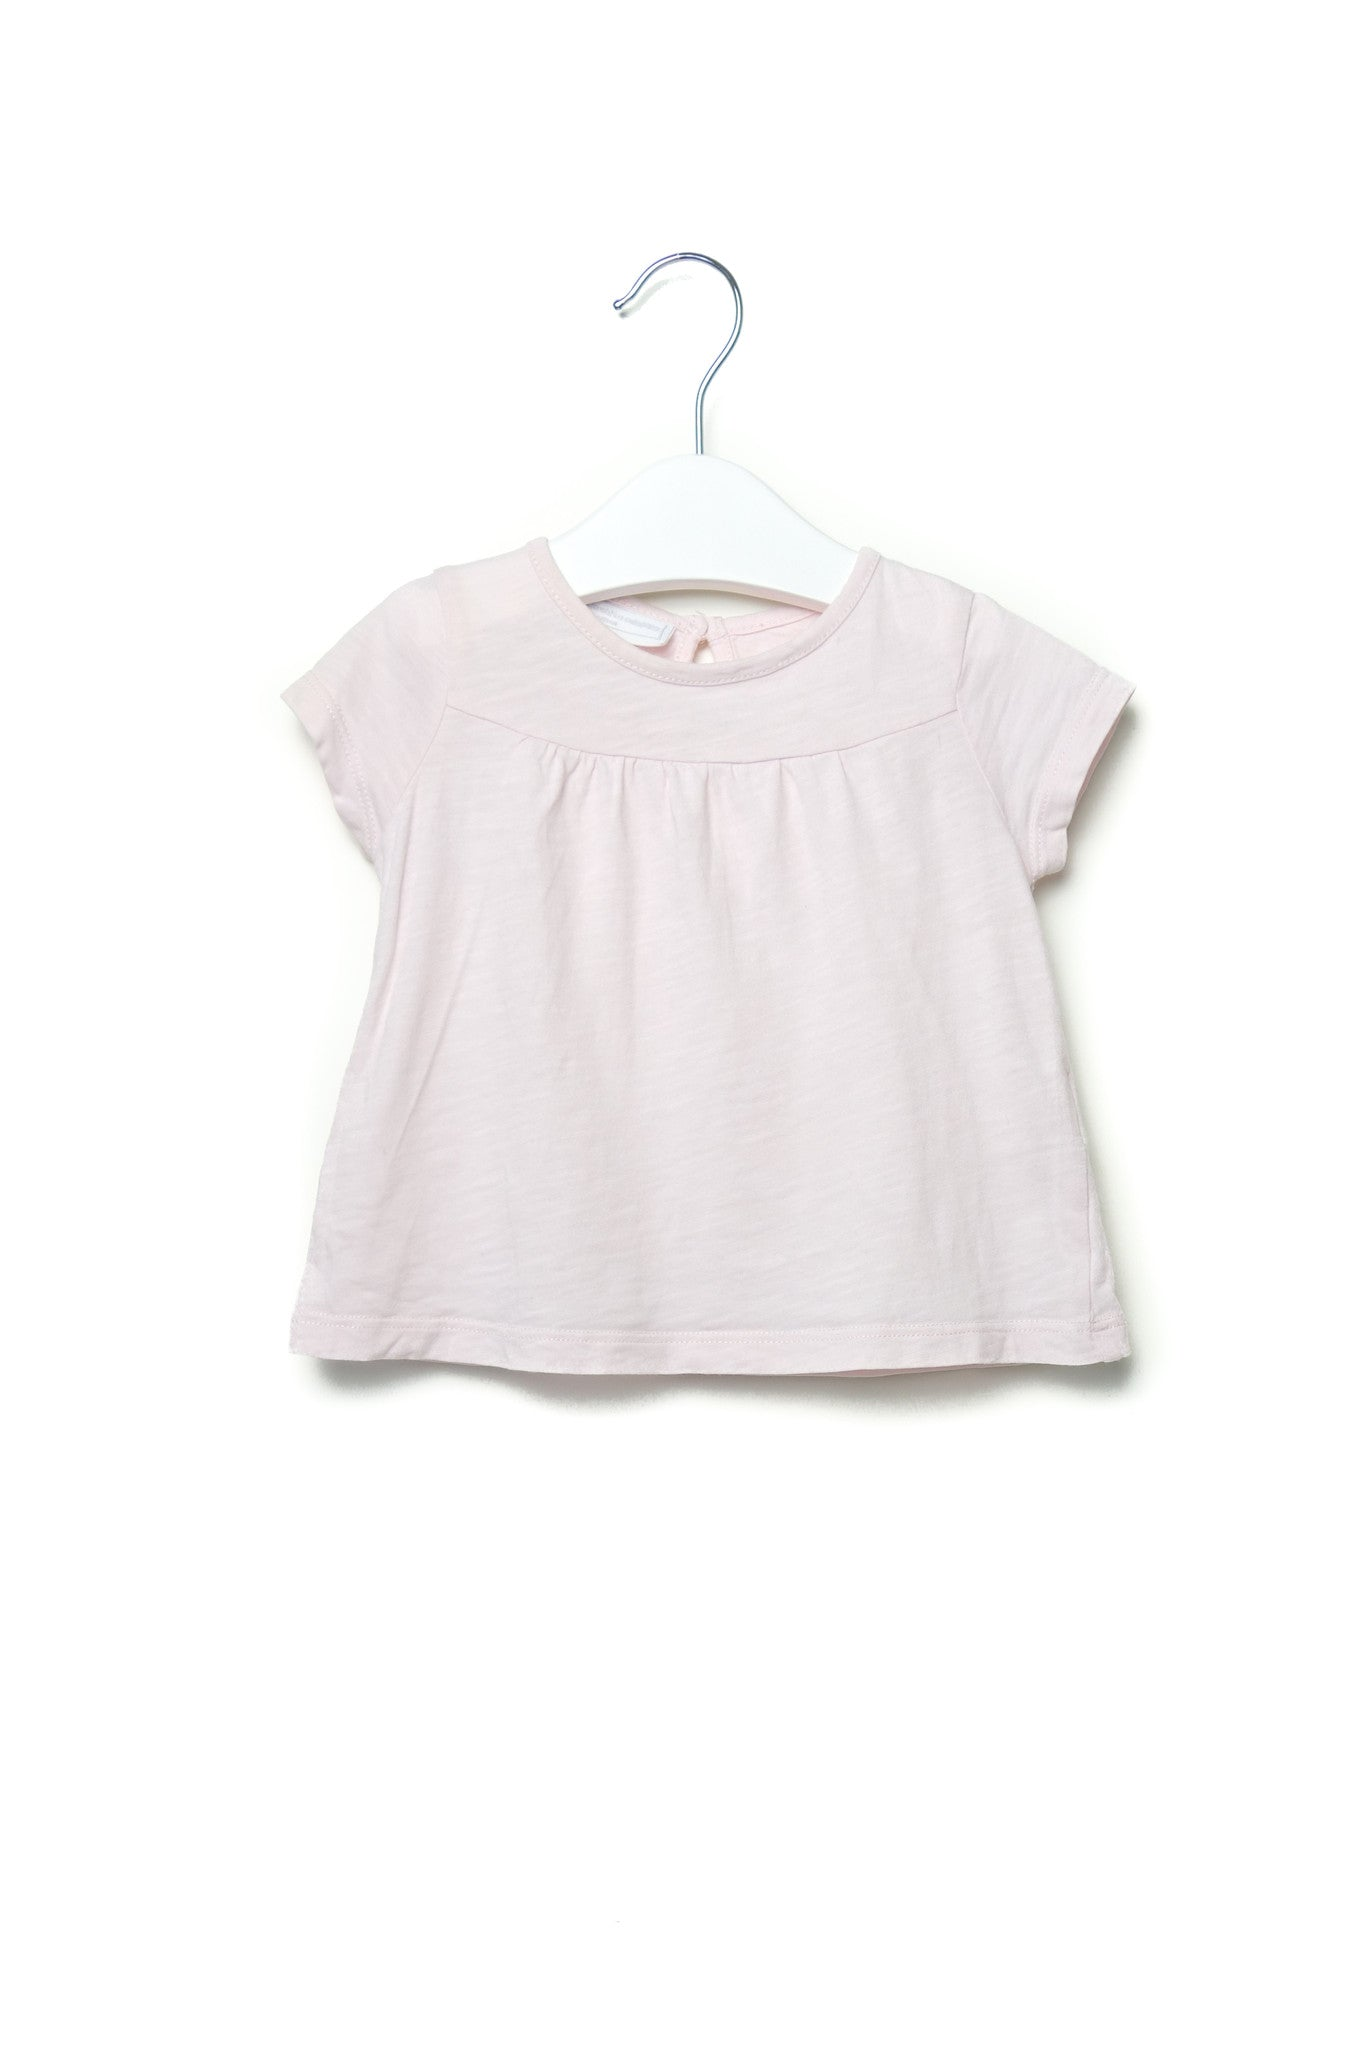 10001627 The Little White Company Baby~Top 6-9M at Retykle